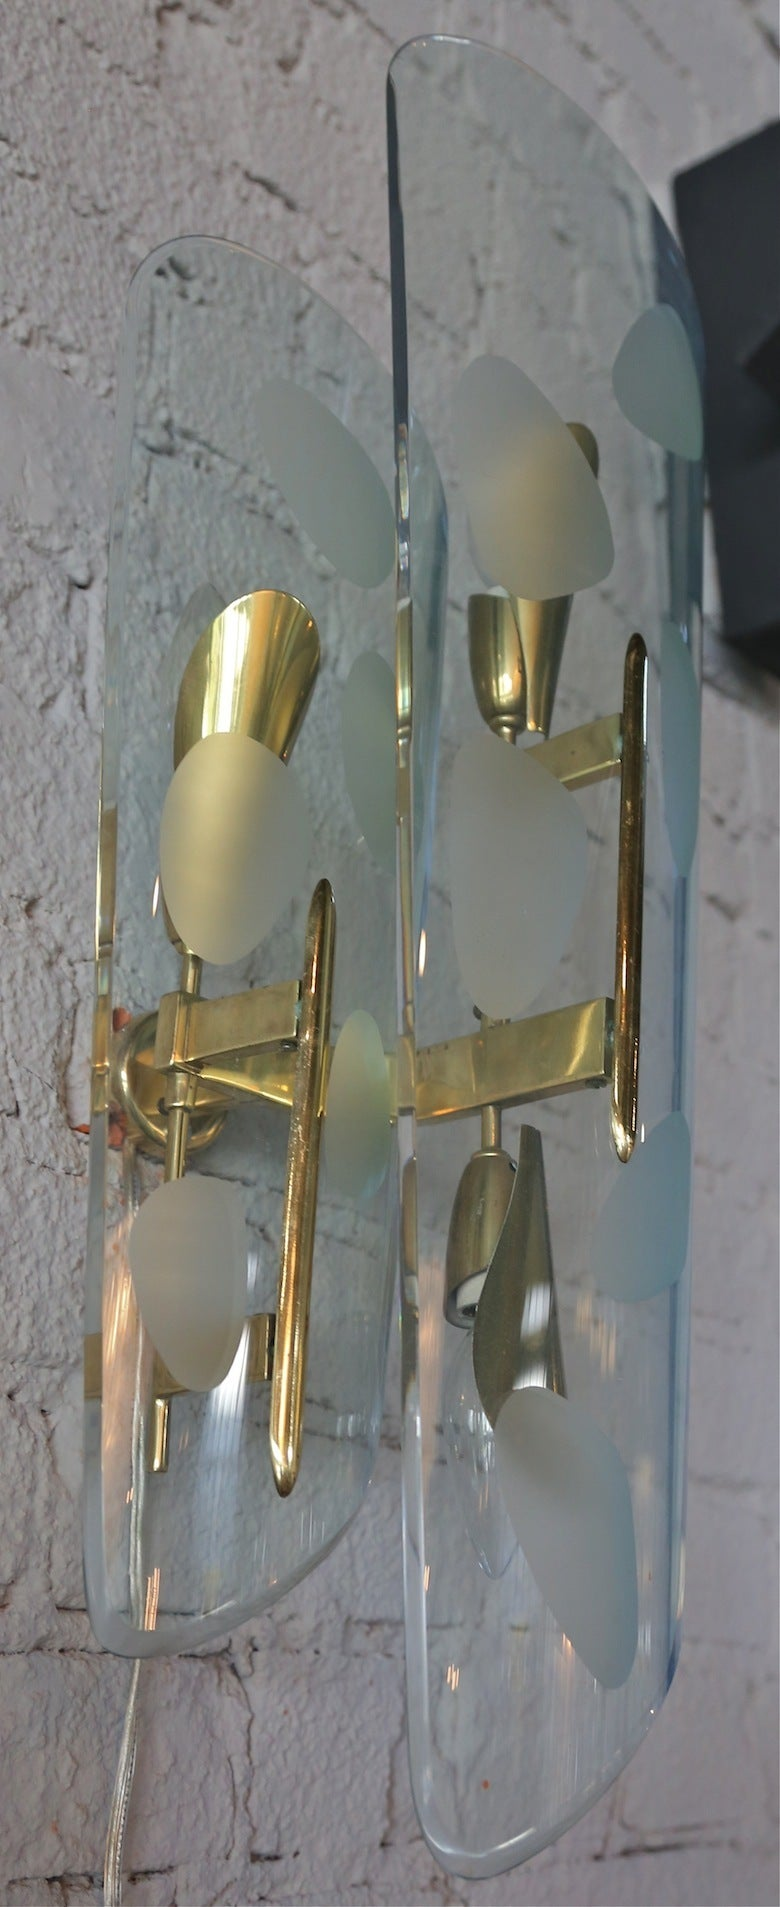 Pair of 1950s Italian Sconces with Etched Glass and Brass Frames For Sale 3